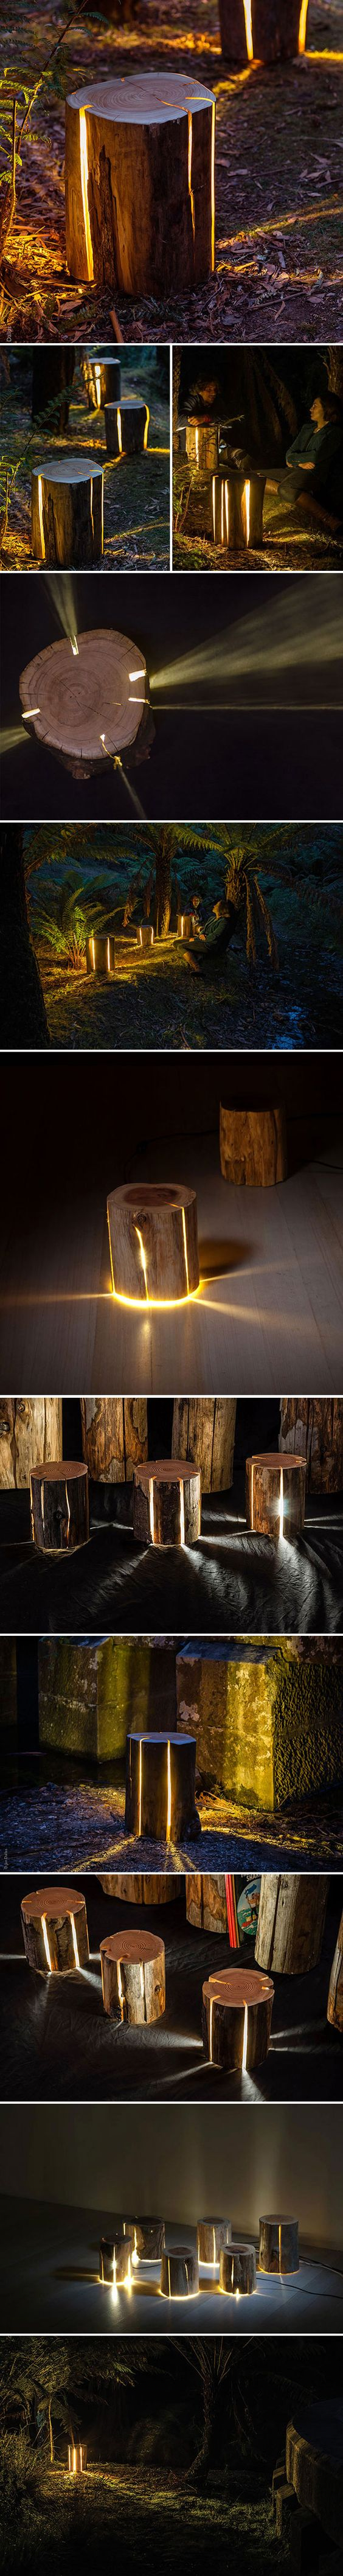 Tasmania-based furniture designer Duncan Meerding loves the outback wilderness, which comes across in his work – his most popular pieces are simple logs whose natural cracks emit soft, warm light. Meerding is also legally blind, so the use of light in his pieces helps him communicate how he sees the world: